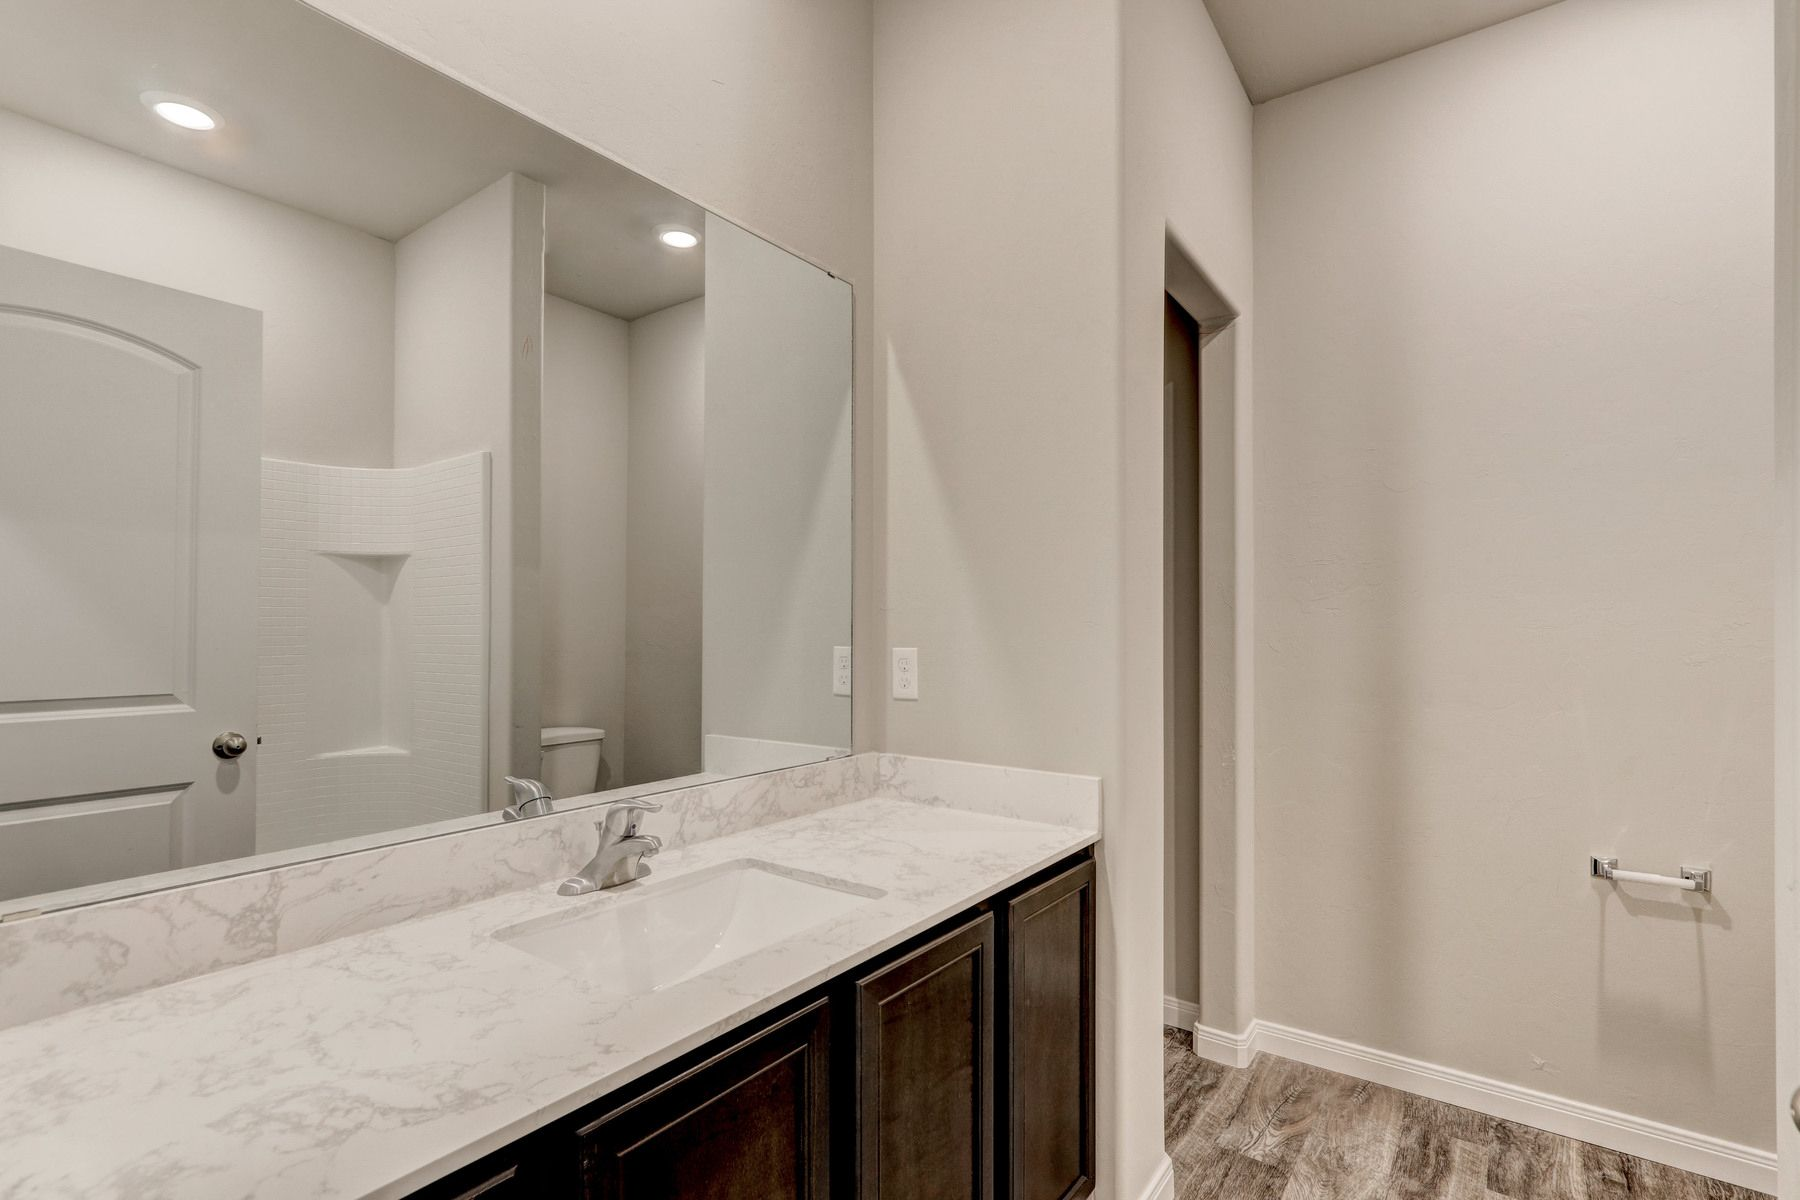 Bathroom featured in the Asher By LGI Homes in Oklahoma City, OK